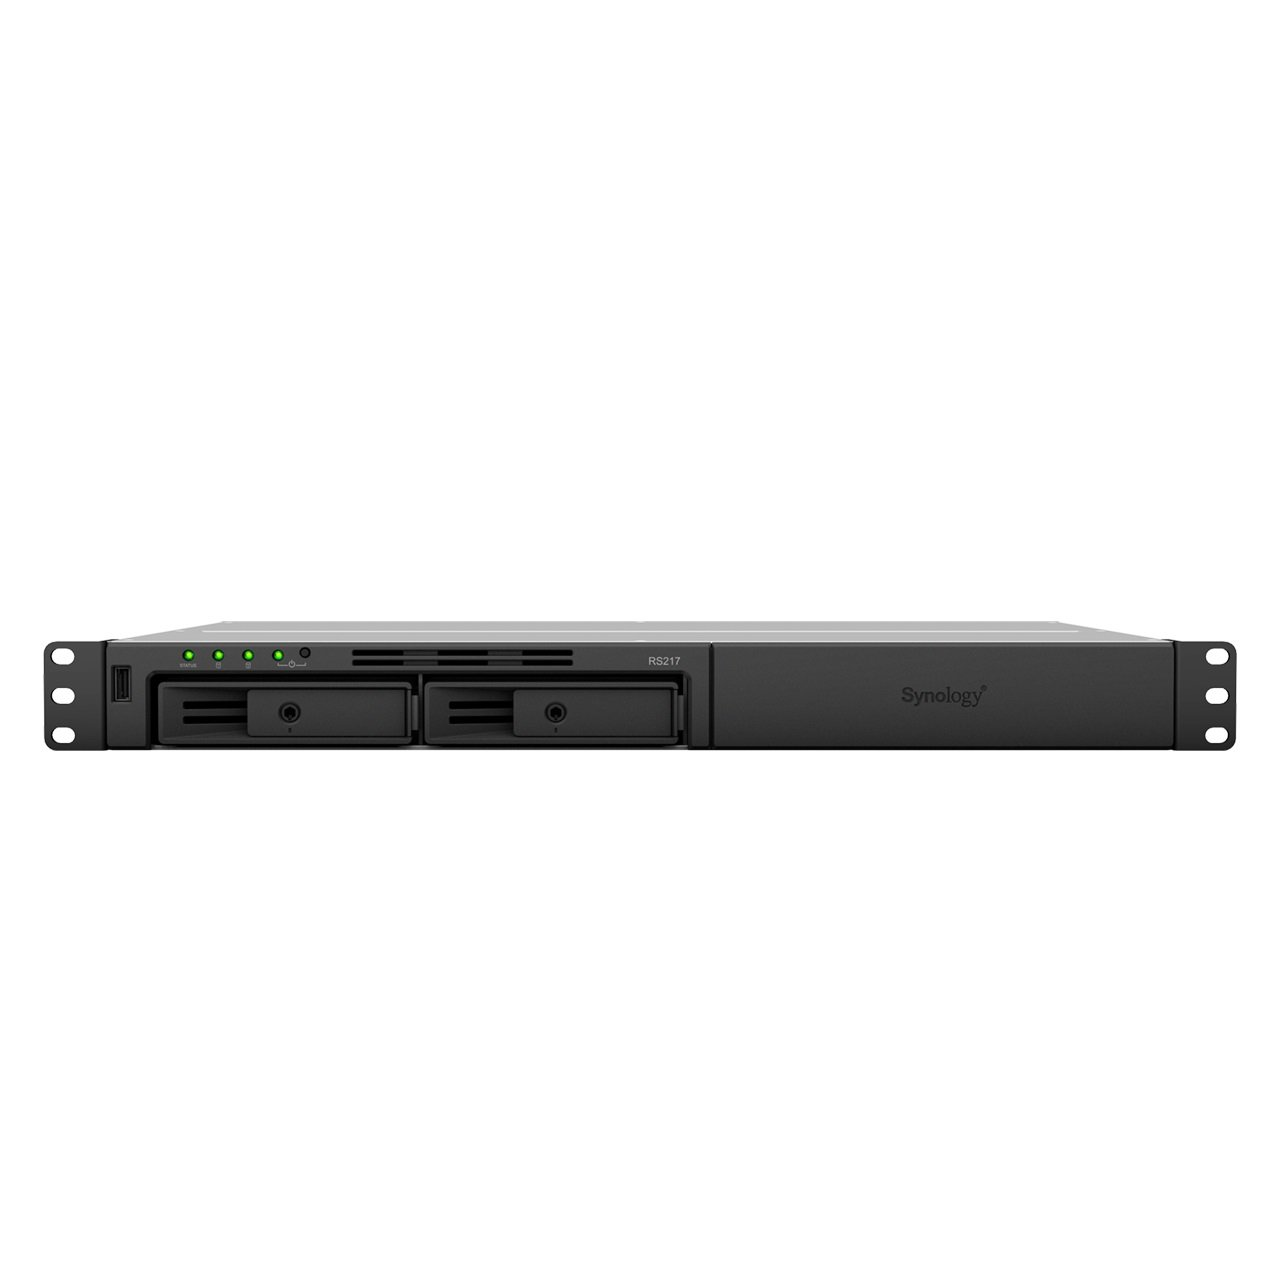 Synology 2bay NAS RackStation RS217 (Diskless) by Synology (Image #1)